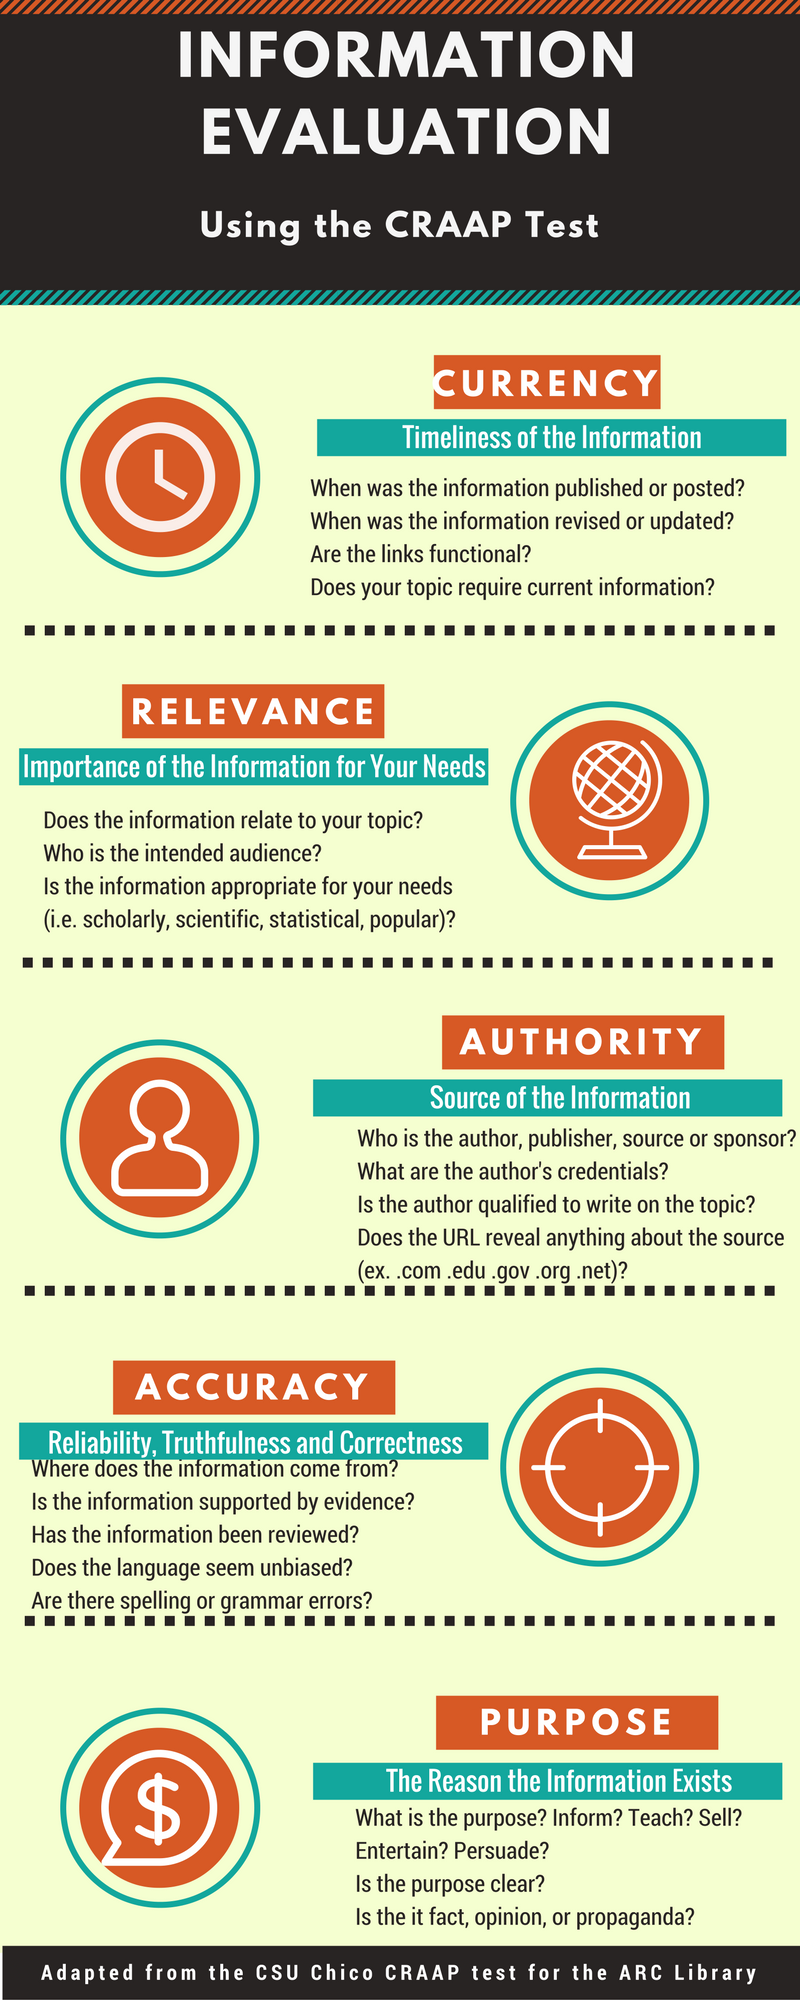 Infographic: Information Evaluation Criteria (Arizona State University Library) [click to enlarge image]